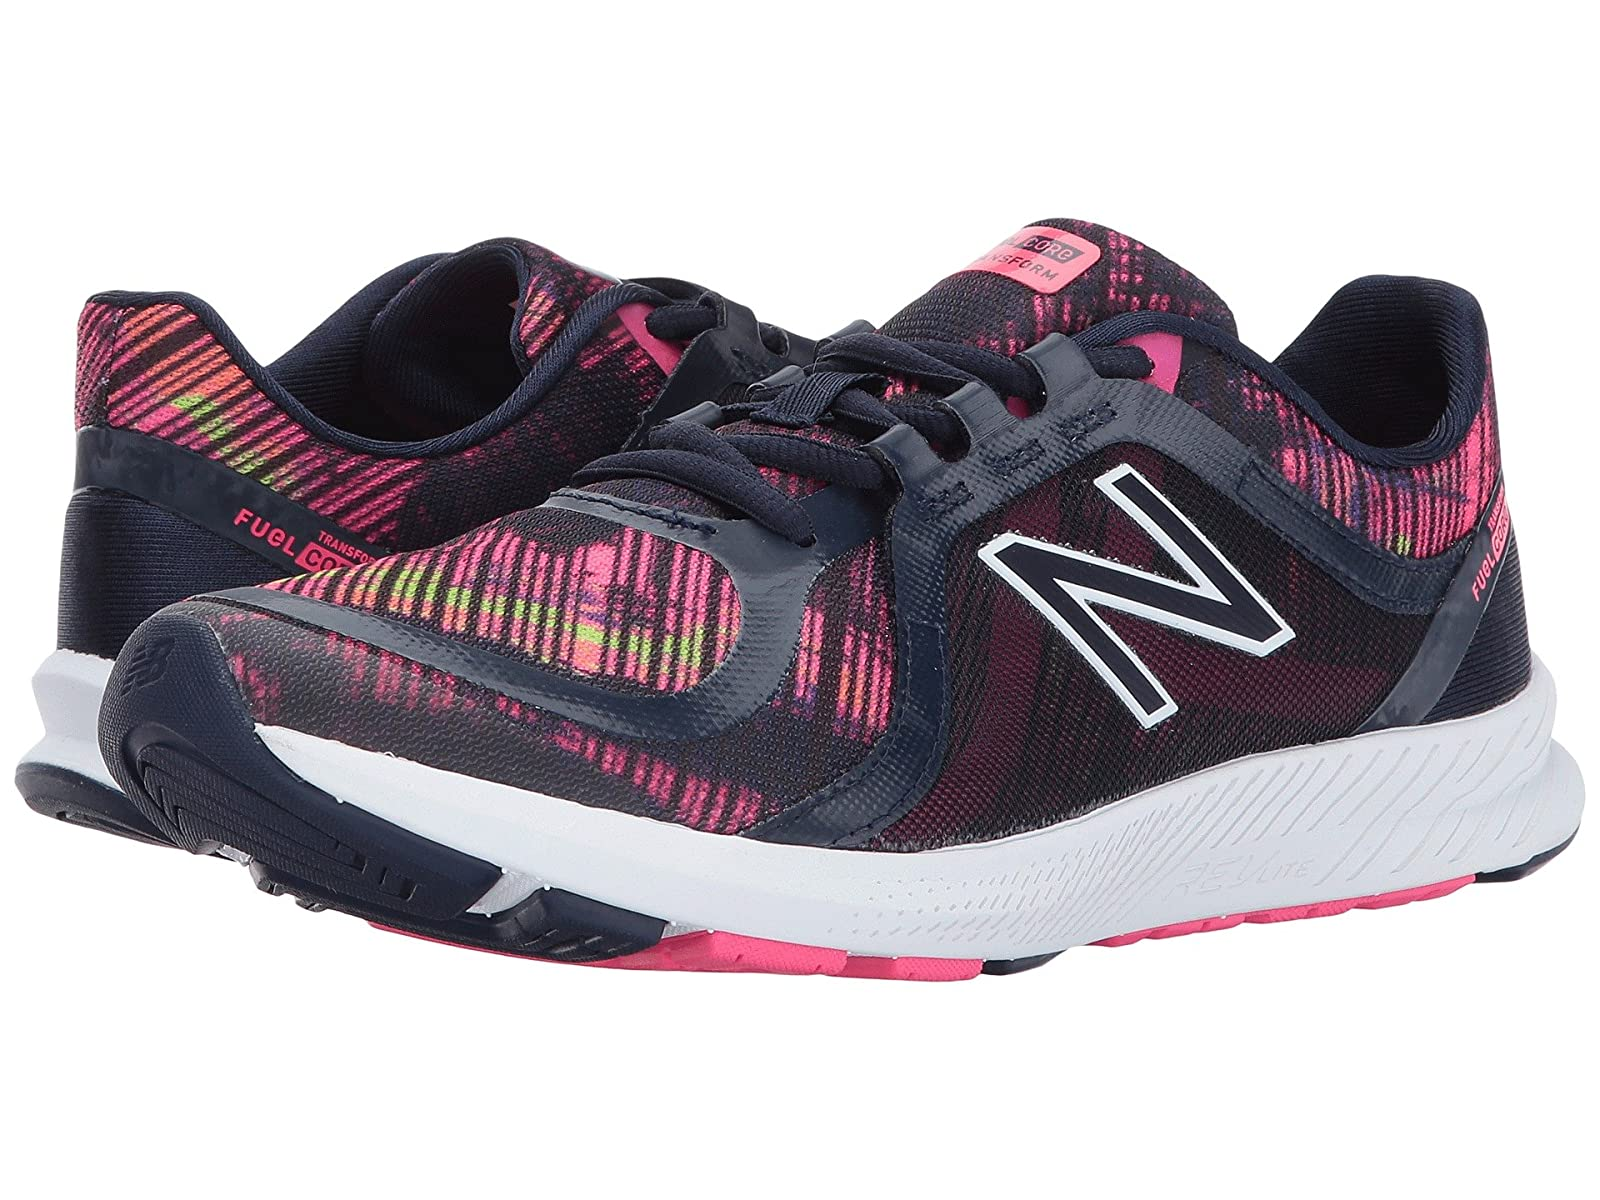 New Balance WX77v2Cheap and distinctive eye-catching shoes